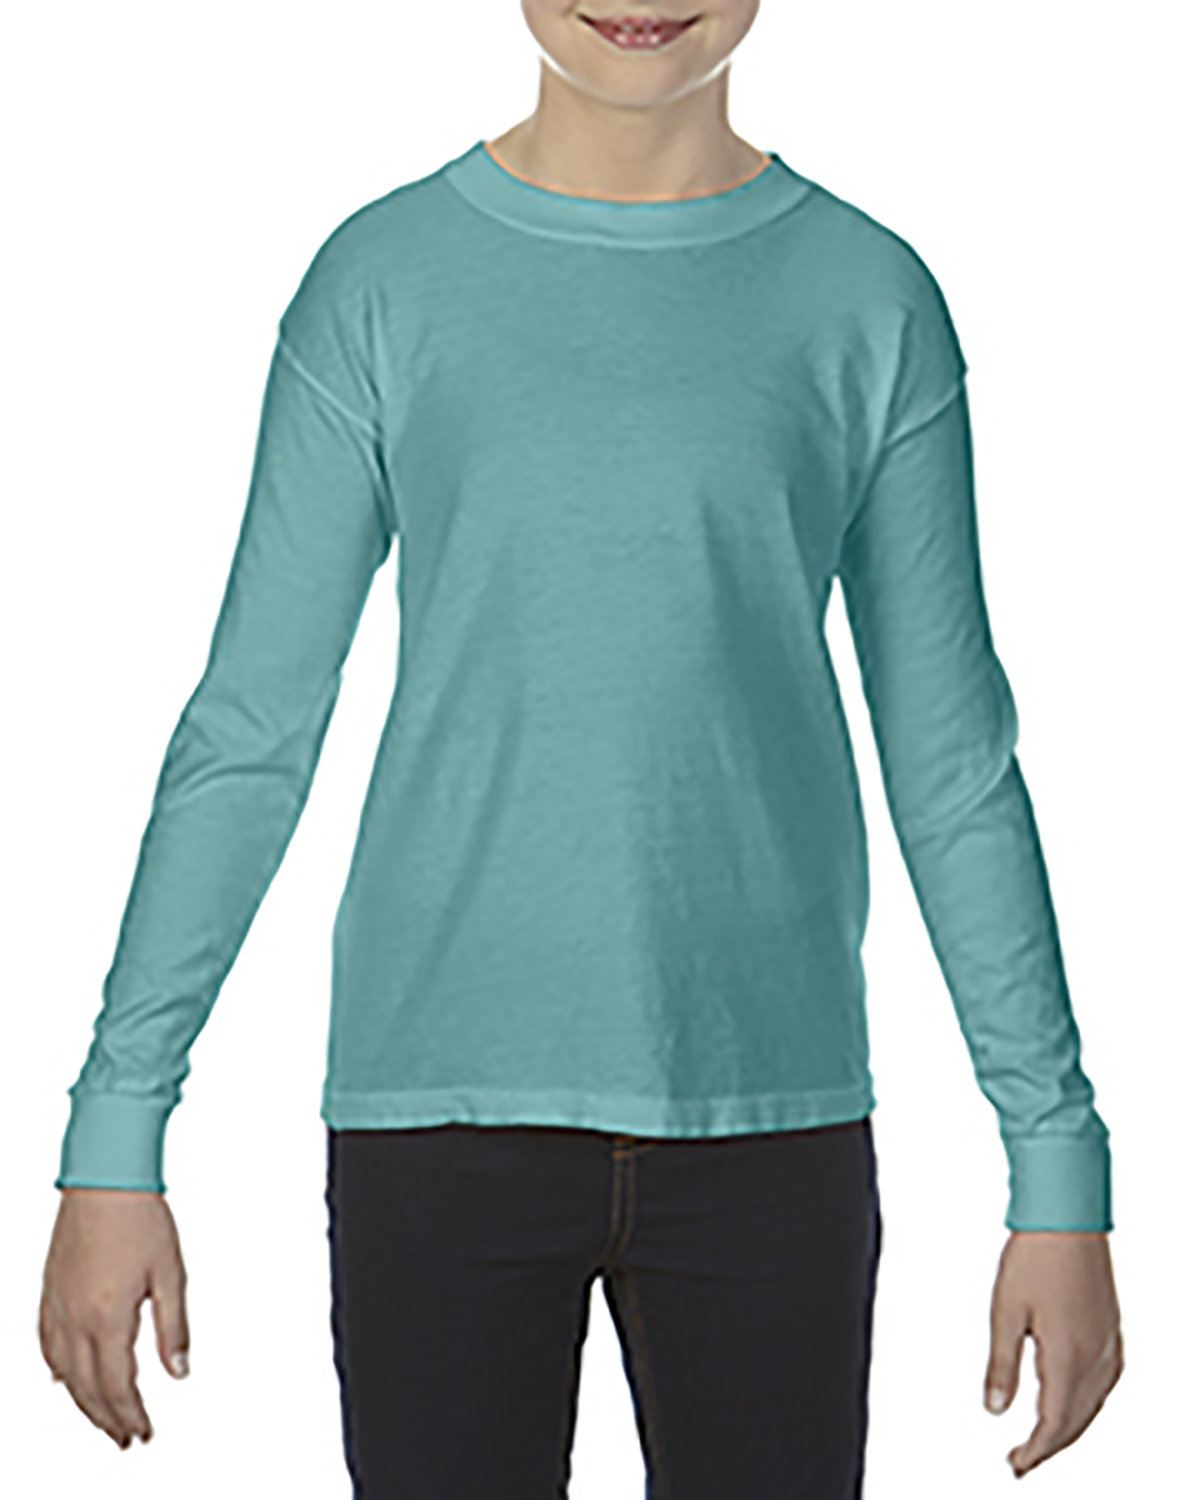 Comfort Colors Youth Garment-Dyed Long-Sleeve T-Shirt SEAFOAM